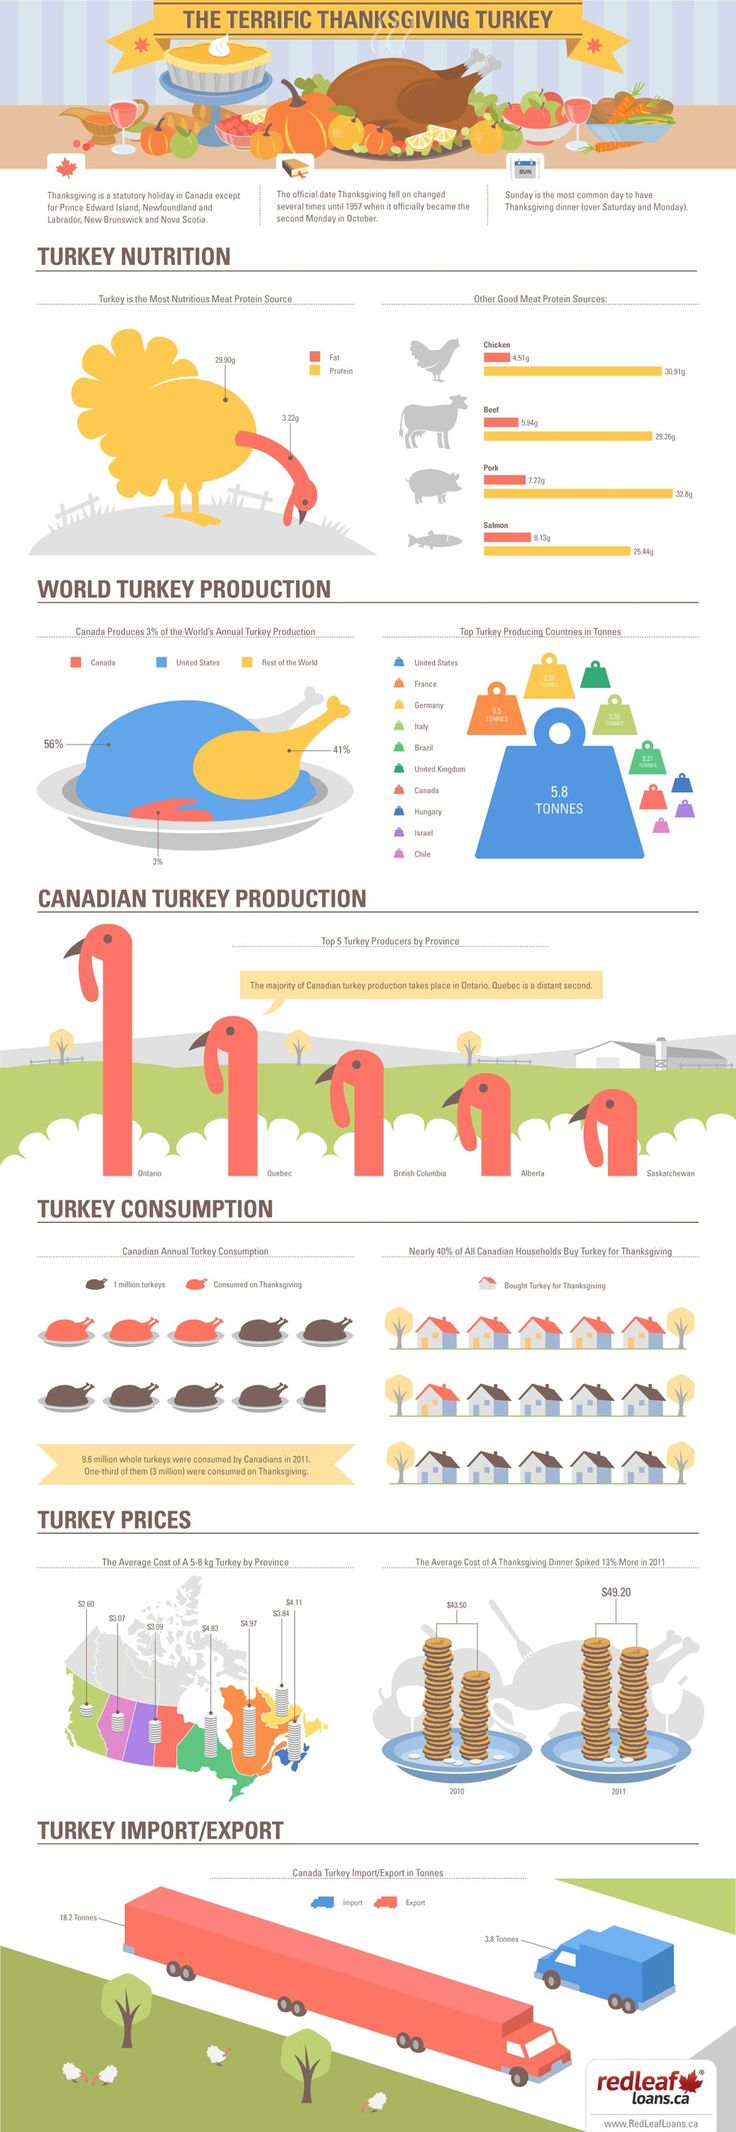 Did you know that the U.S. is responsible for producing 56% of the world's Turkey supply? More Turkey facts here (Infographic): http://eat.ac/Turkey-Infographic